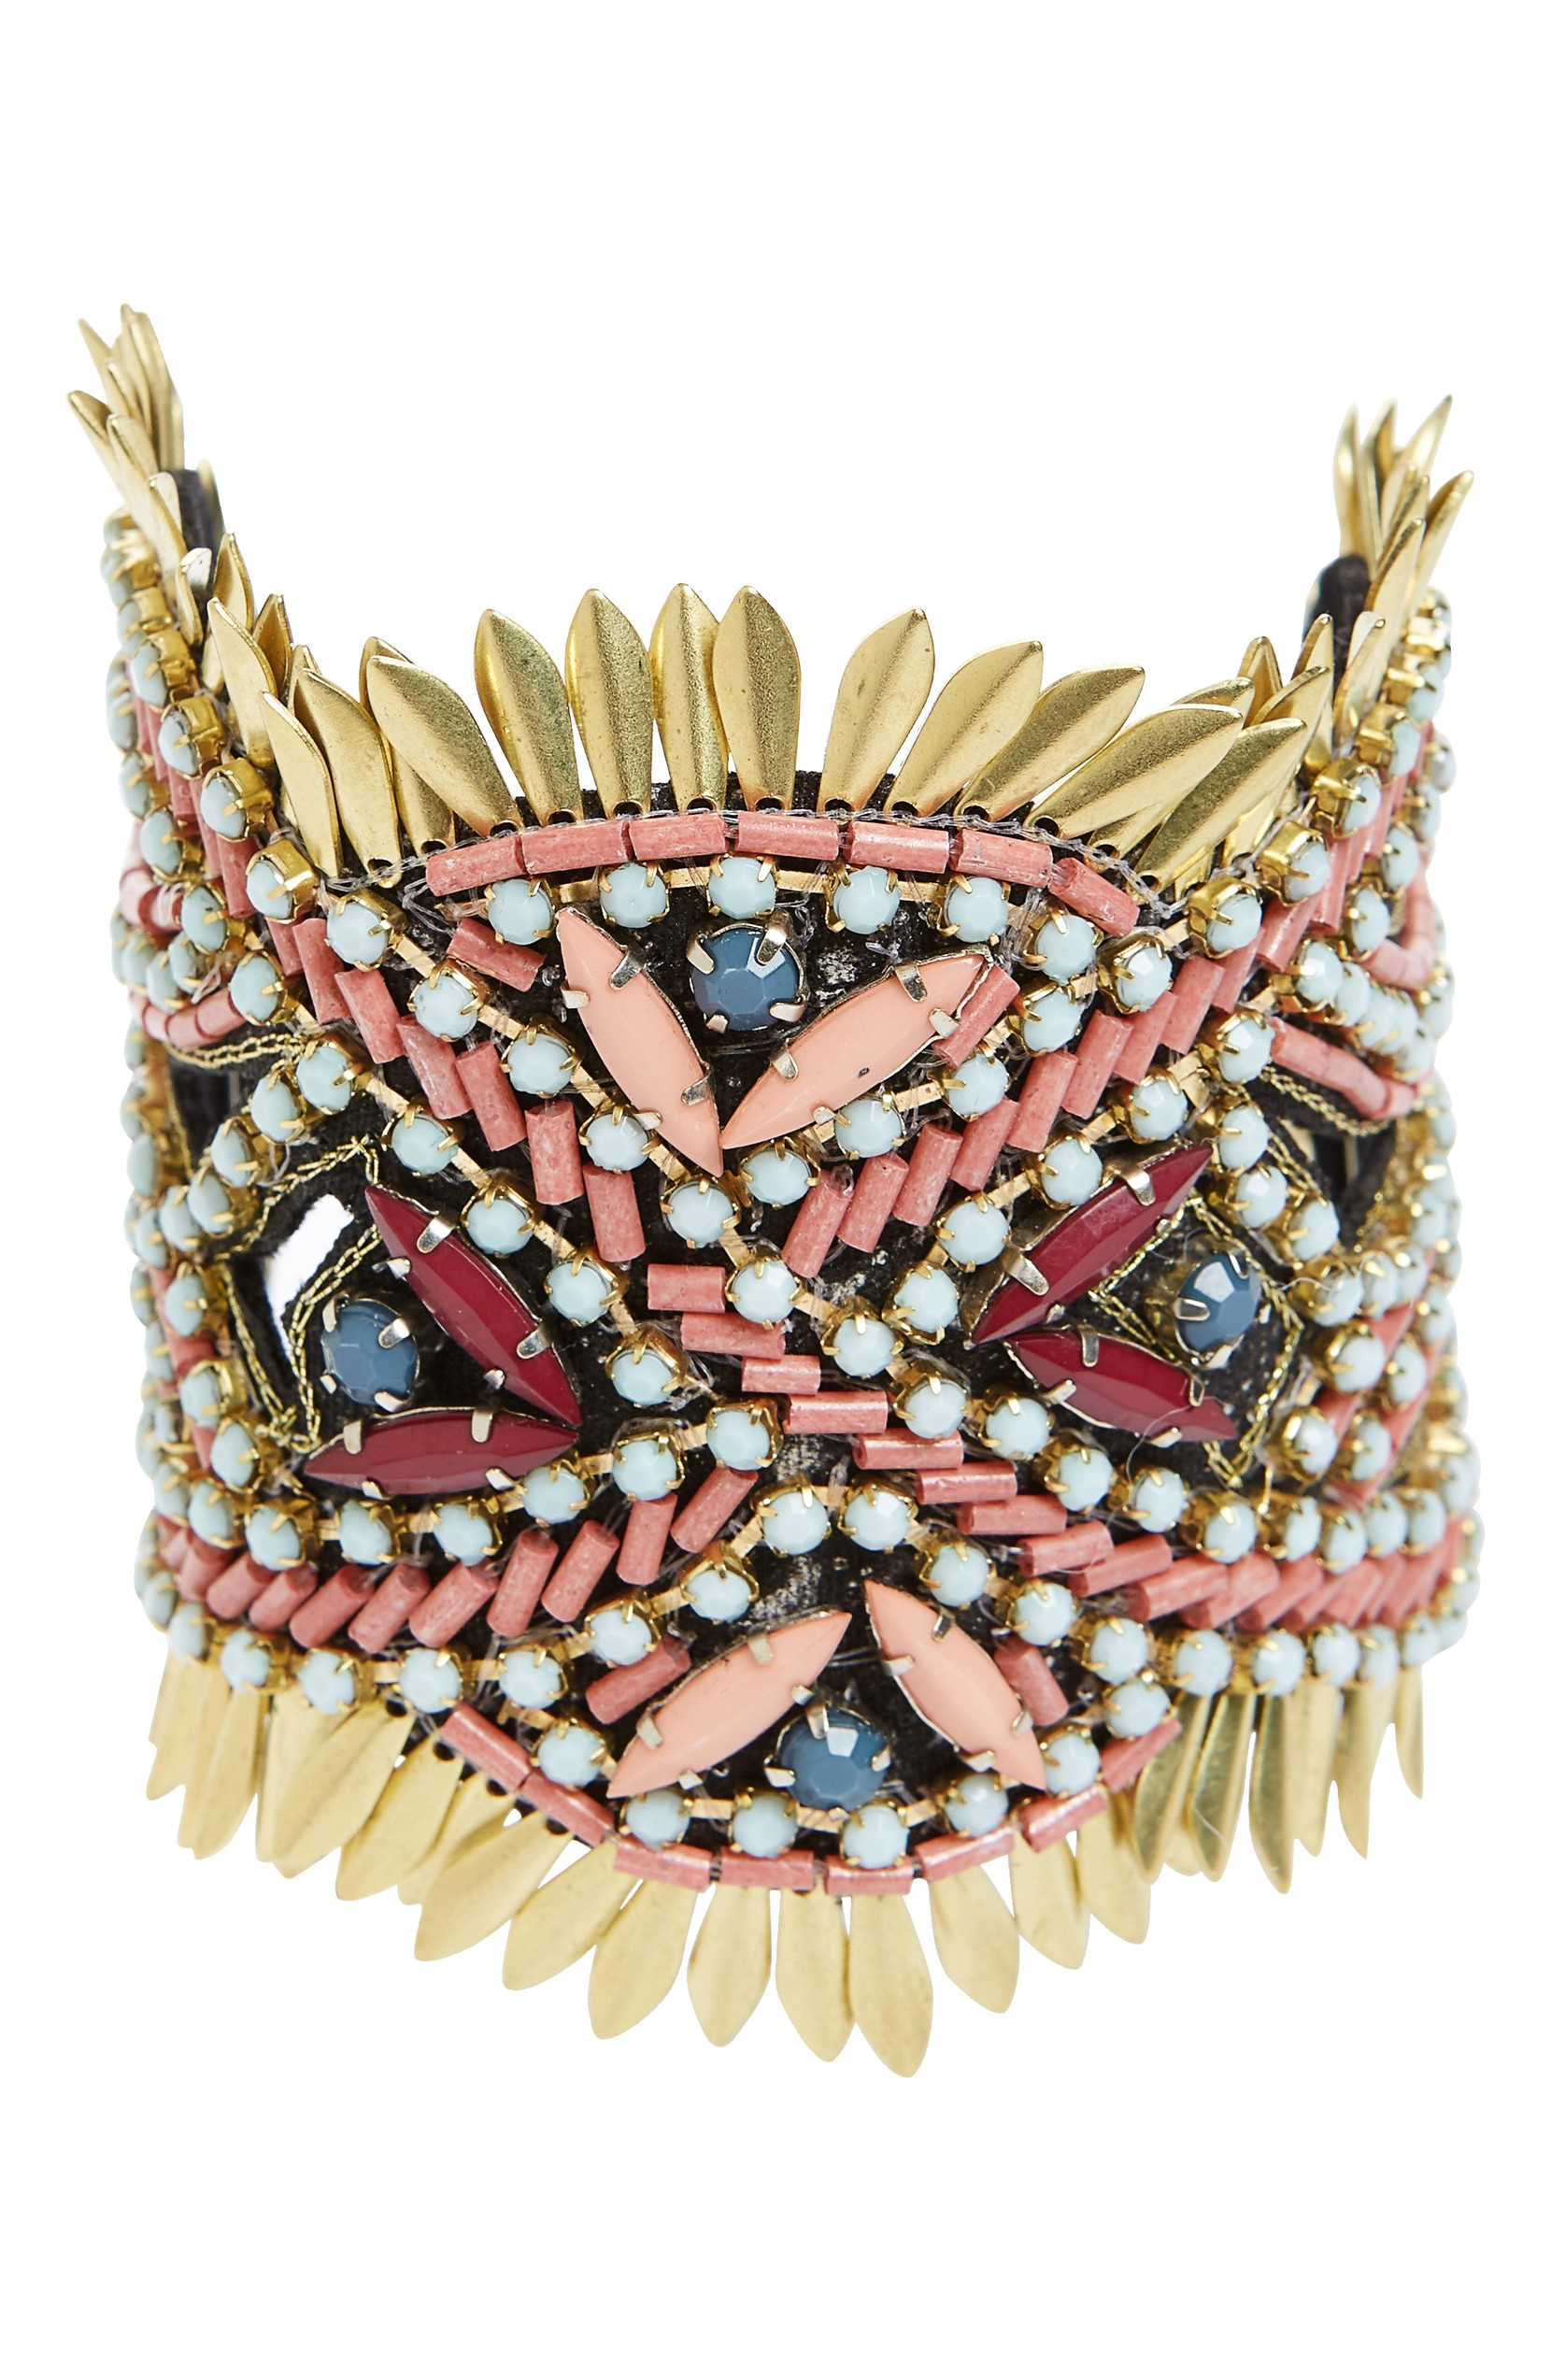 Beaded Statement Bracelet was originally $48.00 and is now $28.80. Feathery golden plates radiate from the edges of a wide, dramatic cuff bracelet alight in a rainbow of shining beads.<p>(Image: Nordstrom)</p>